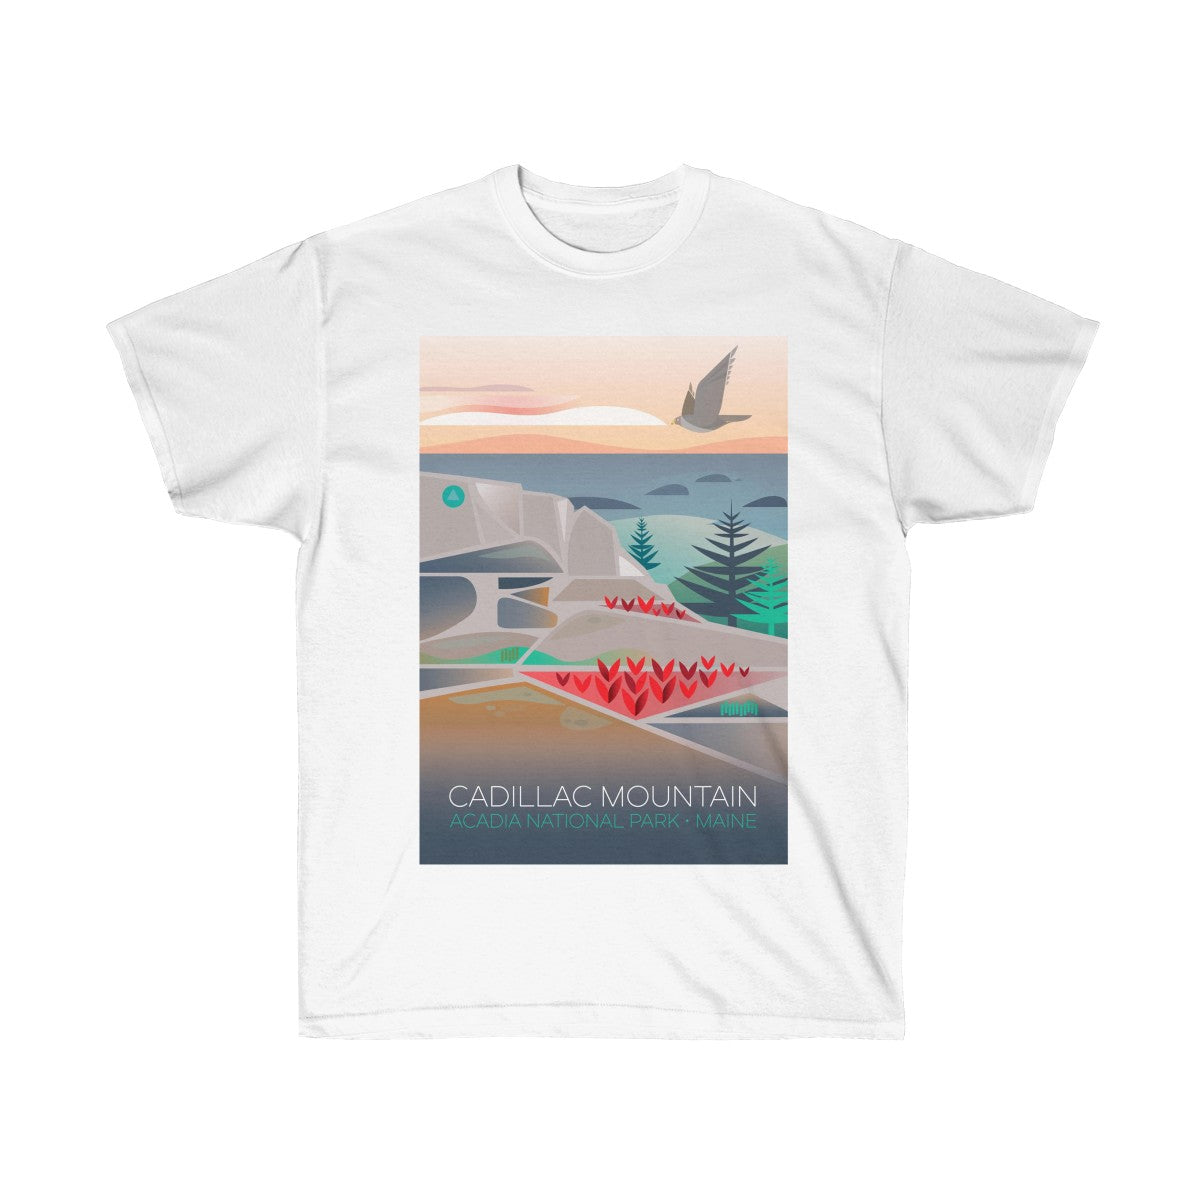 CADILLAC MOUNTAIN UNISEX ULTRA COTTON TEE